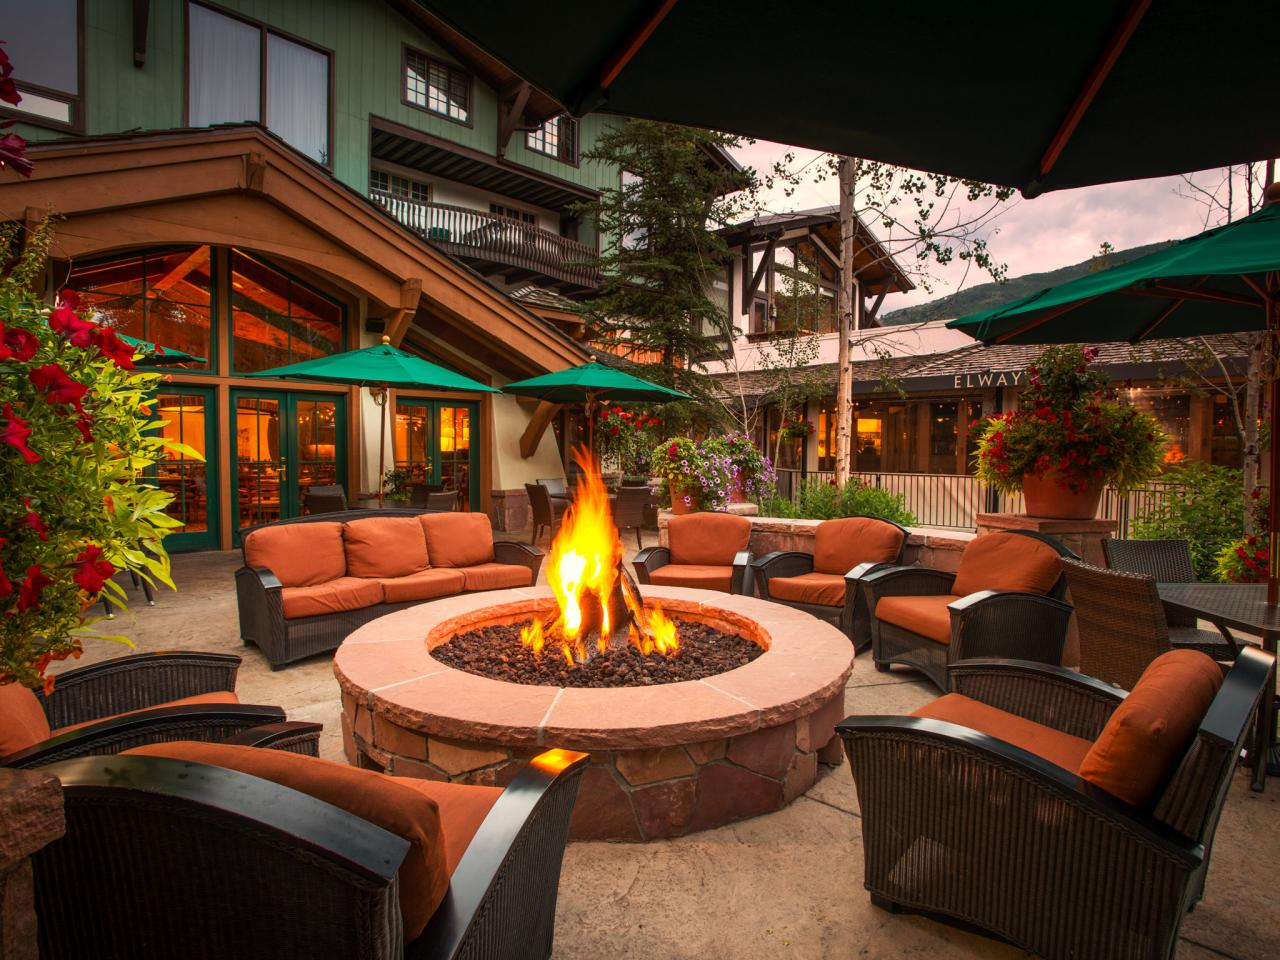 12 all around the firepit - Patio Design Ideas With Fire Pits